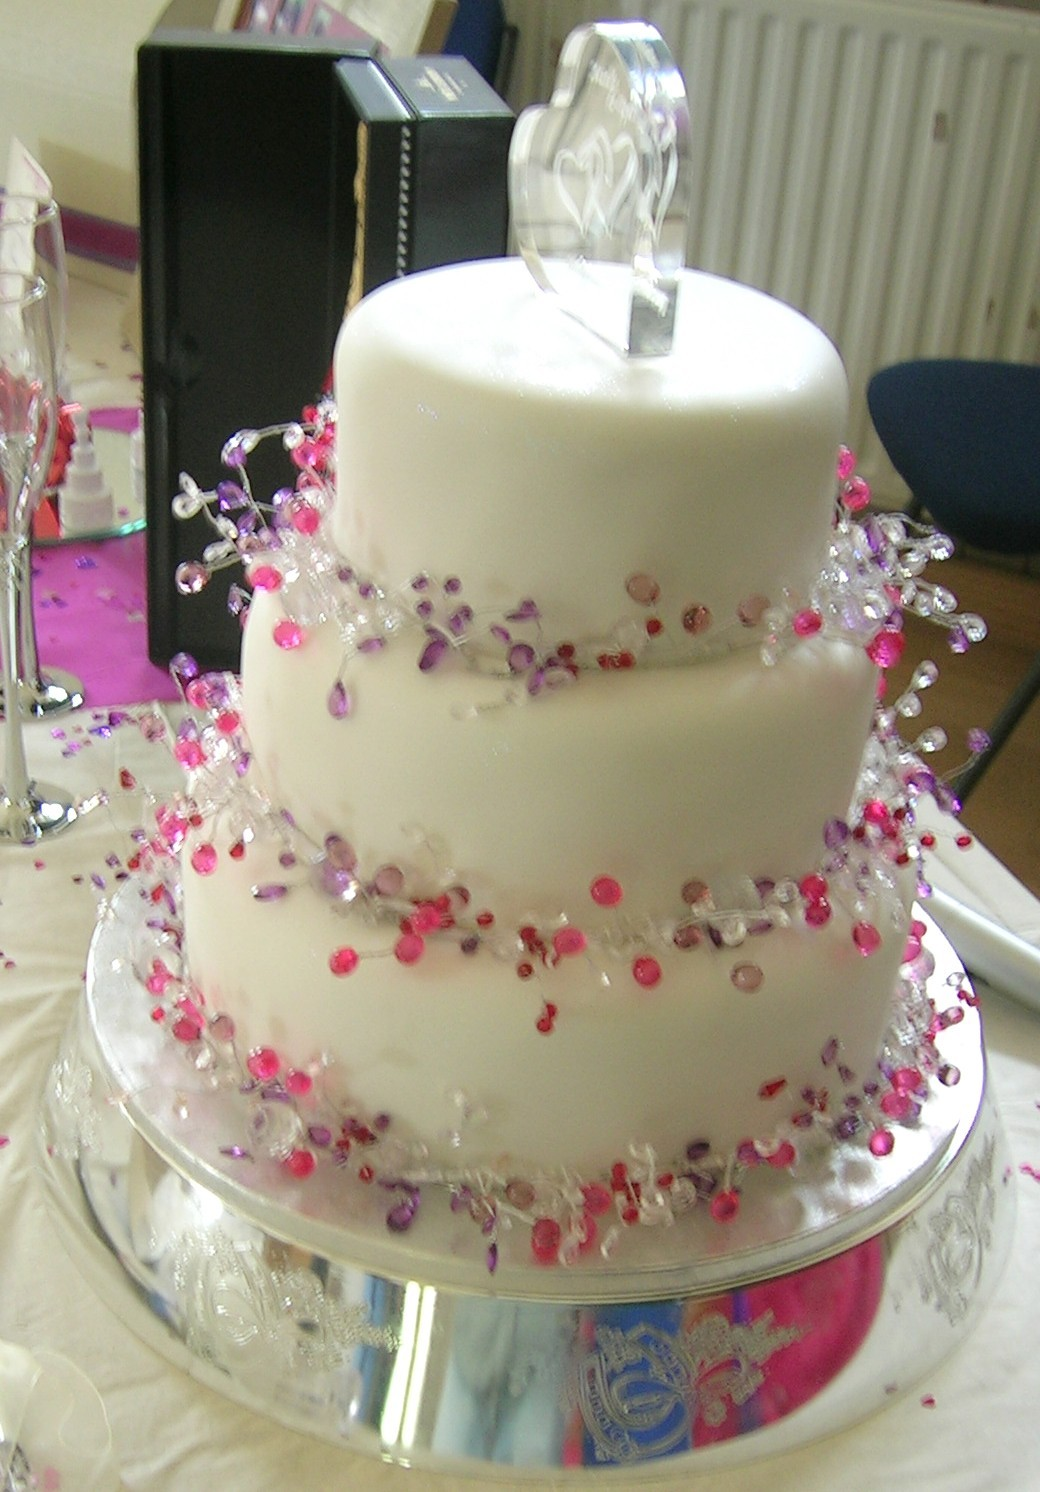 Cake Decoration Pics : Wedding Pictures Wedding Photos: Wedding Cake Decorating ...